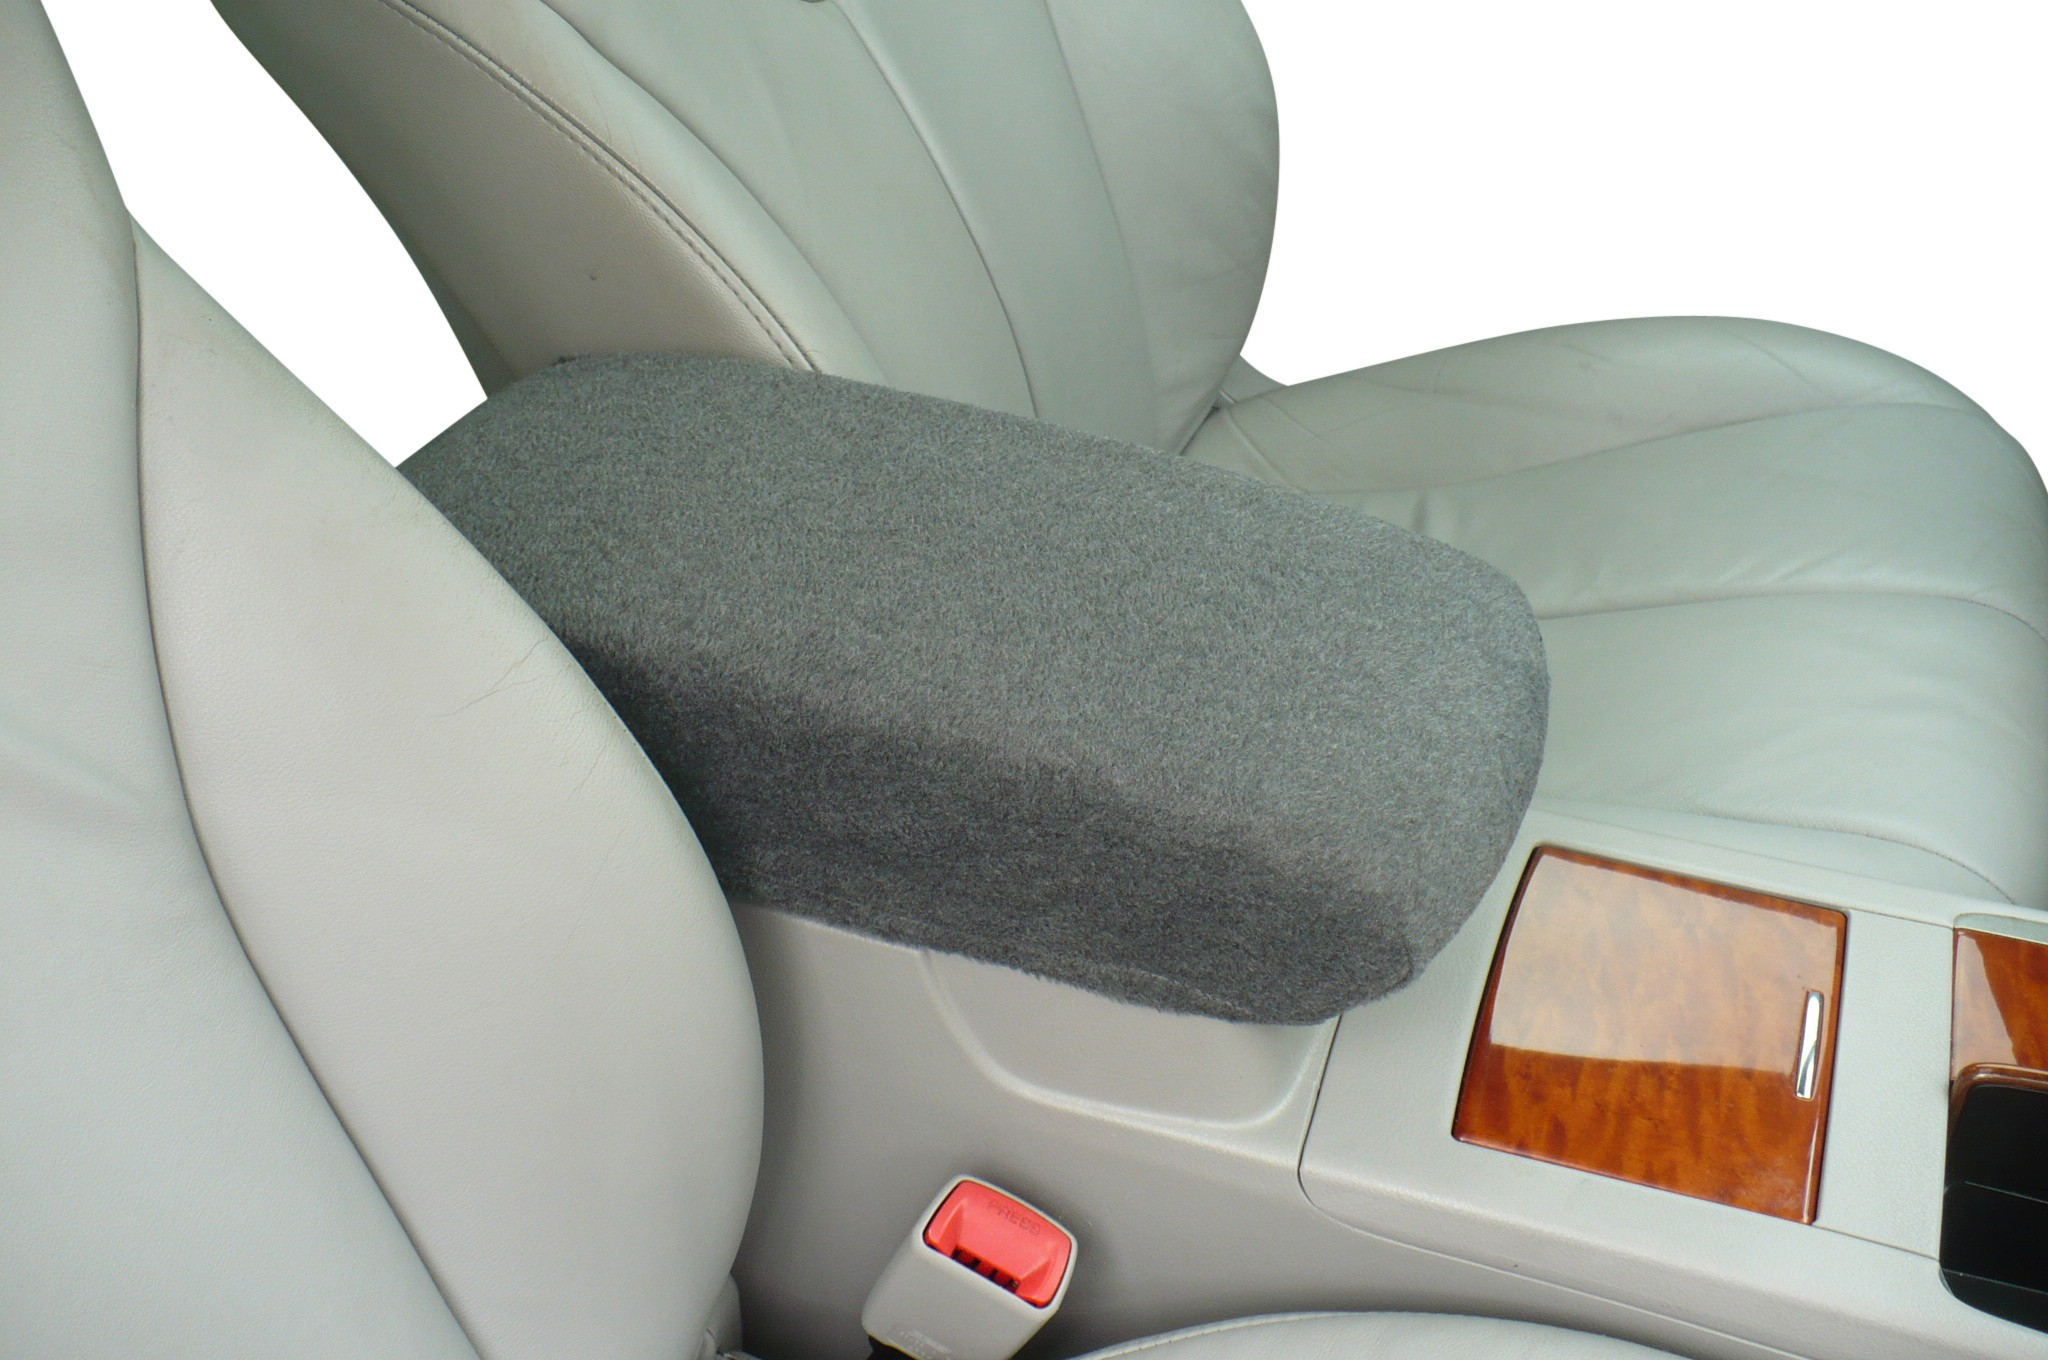 Ford Explorer 1998-2010 - Fleece Material